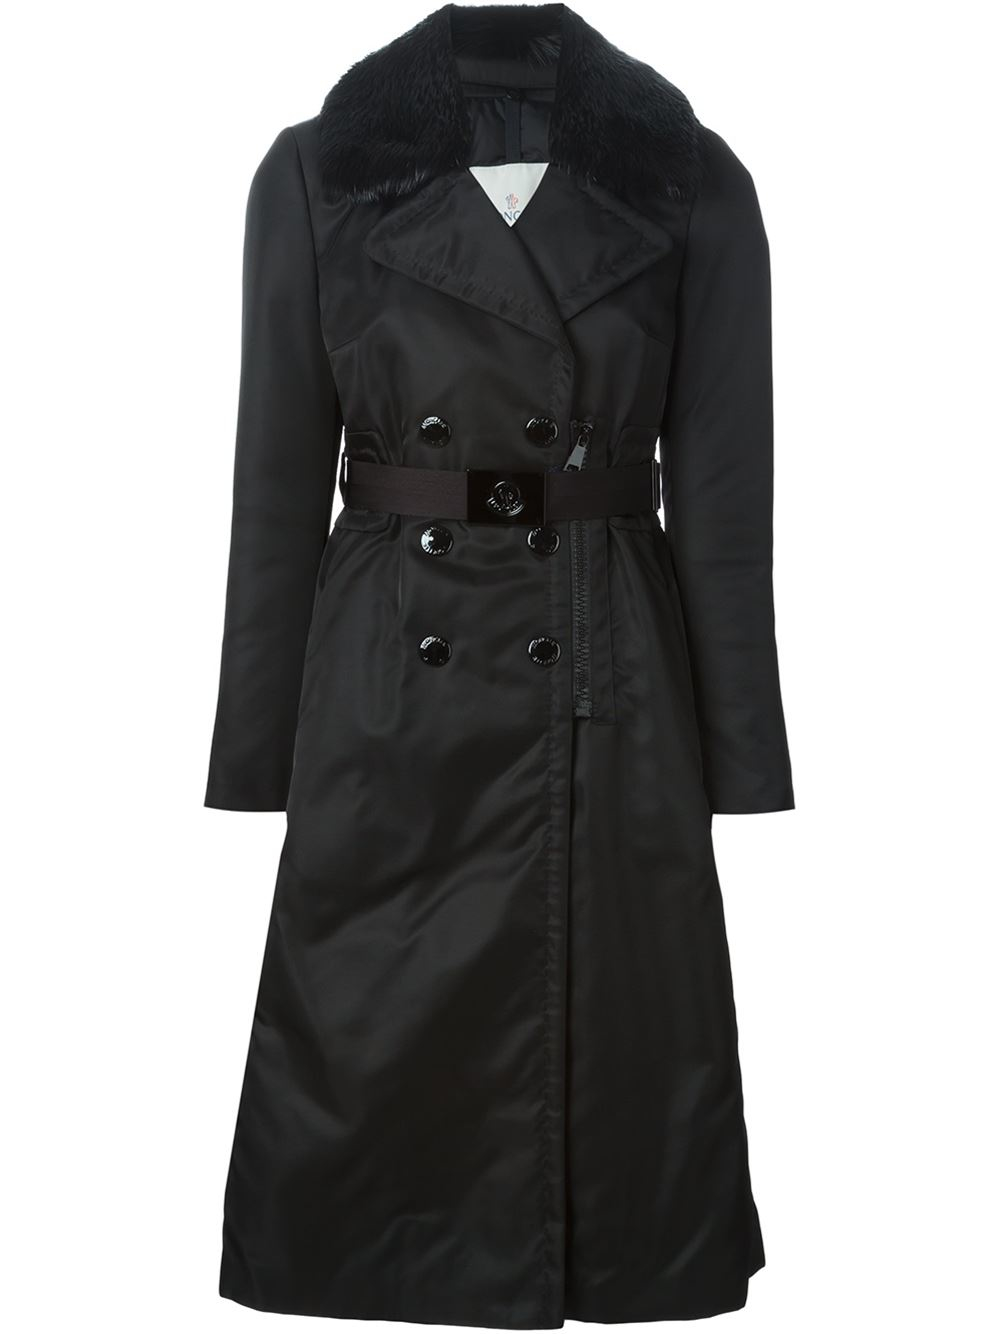 Moncler Sisteron Trench Coat In Black Lyst